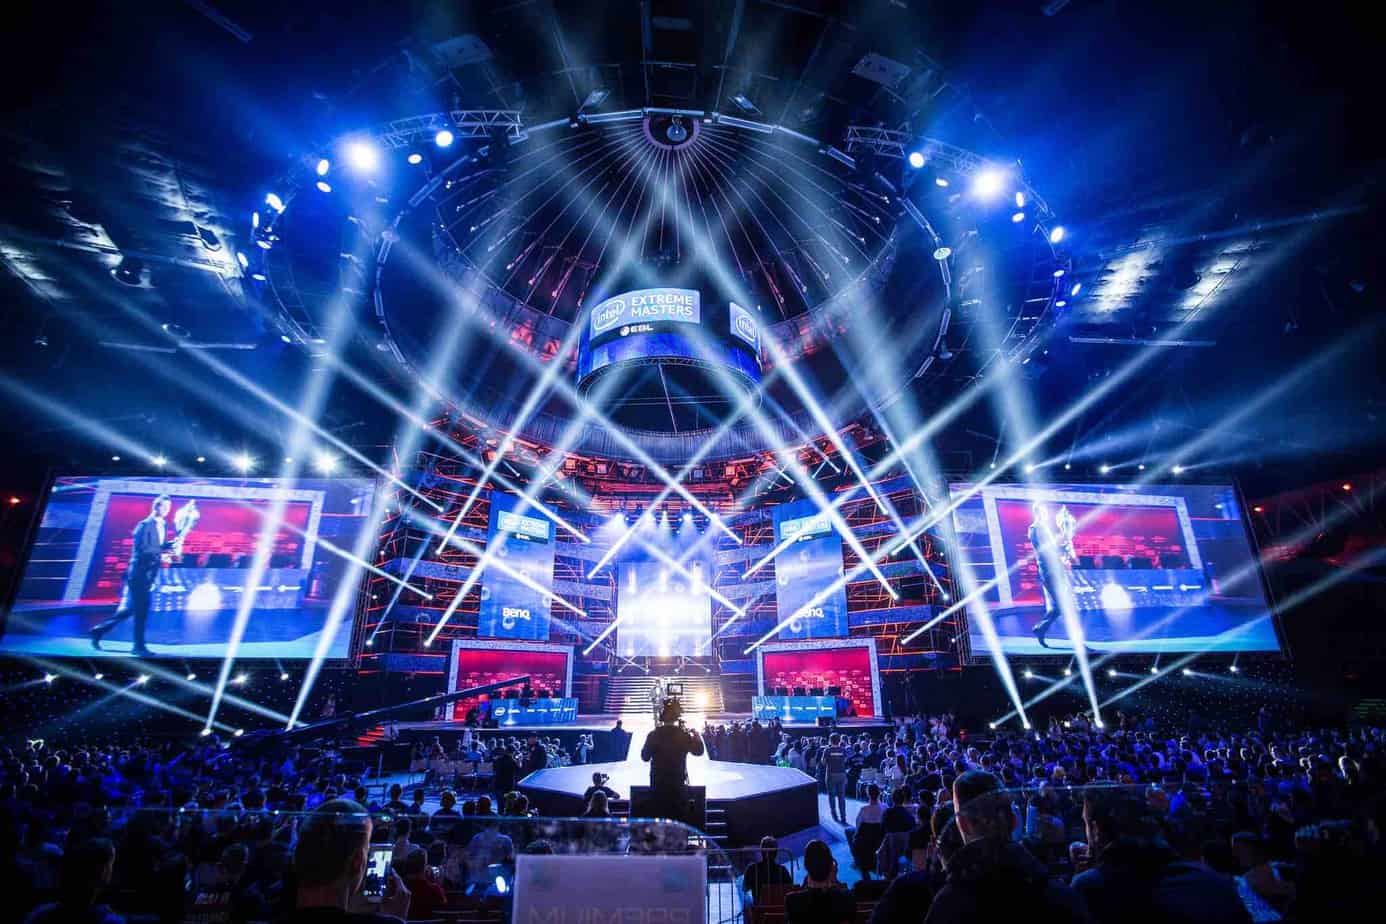 esports-executive-search-london-boom-executive-search-esports-bonanza Bedroom to Billion dollar industry fuelling Esports Executive Search growth eSports Executive Search